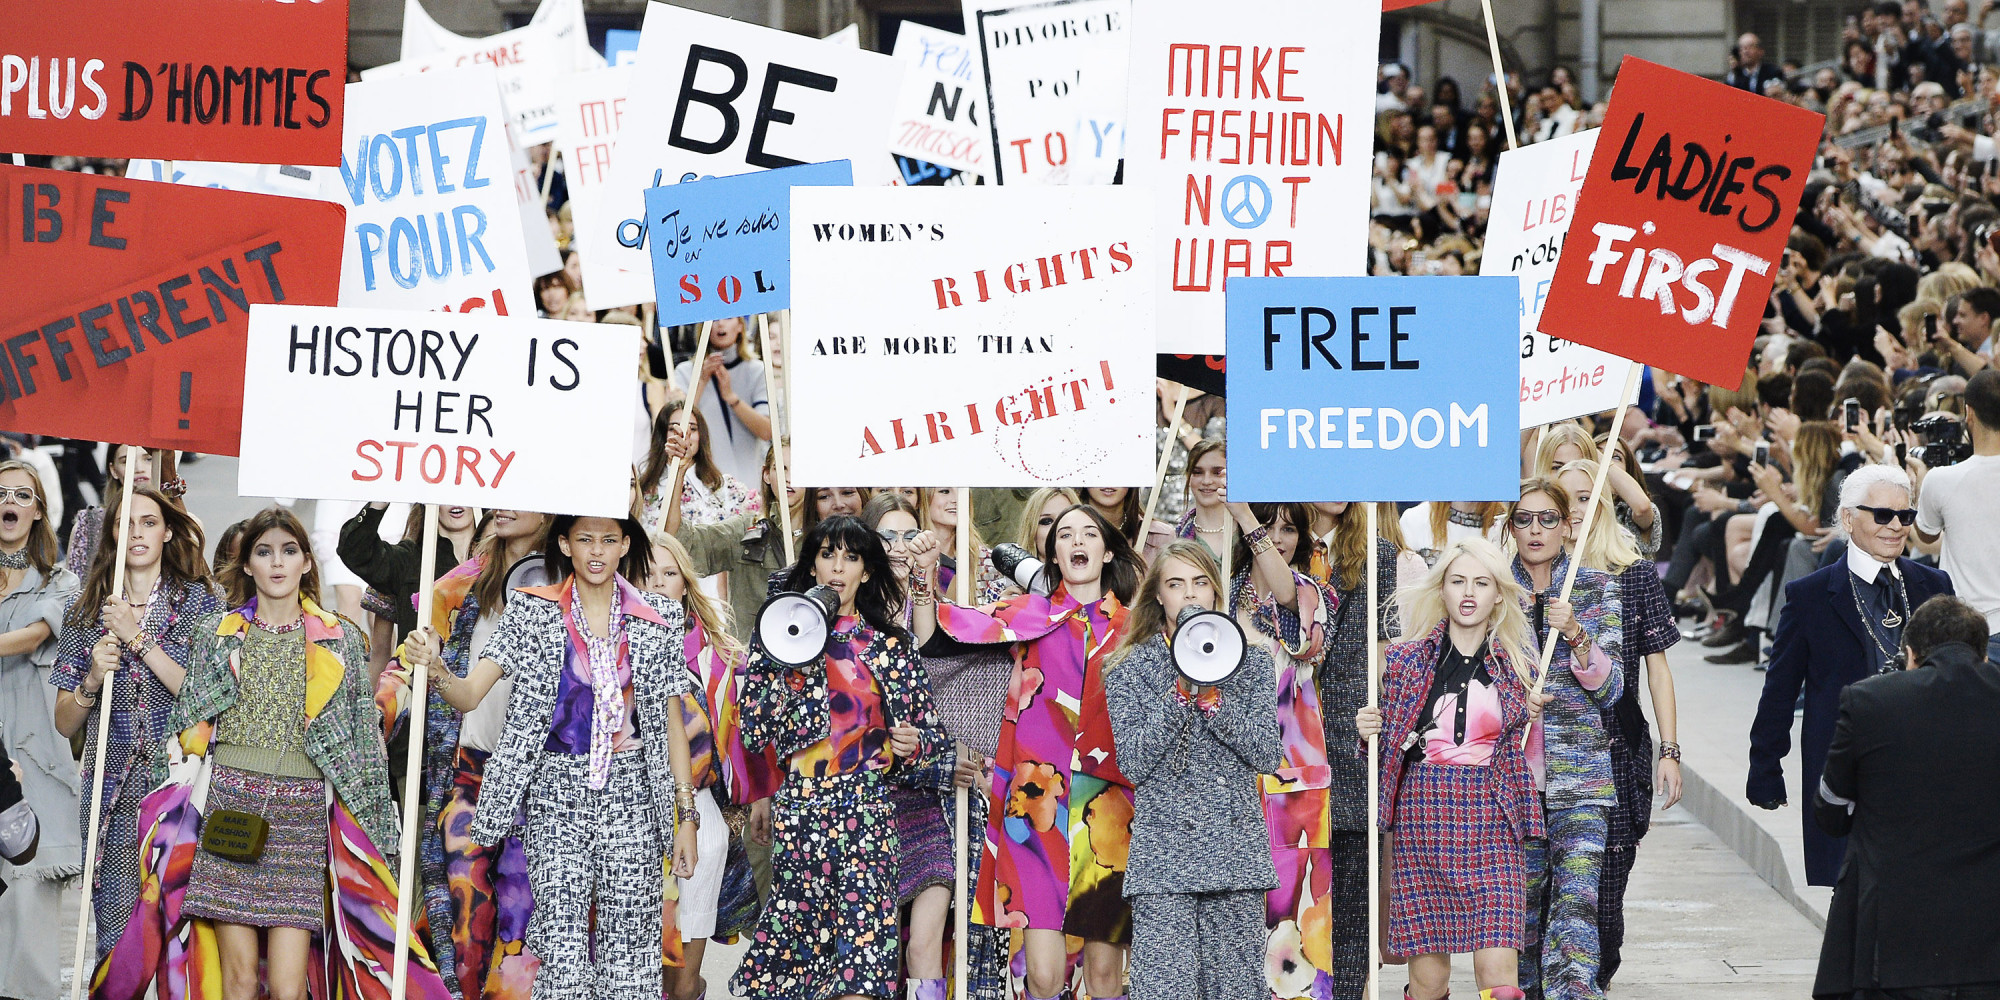 Why Chanel's Feminist Protest Is Great News For Gender ...